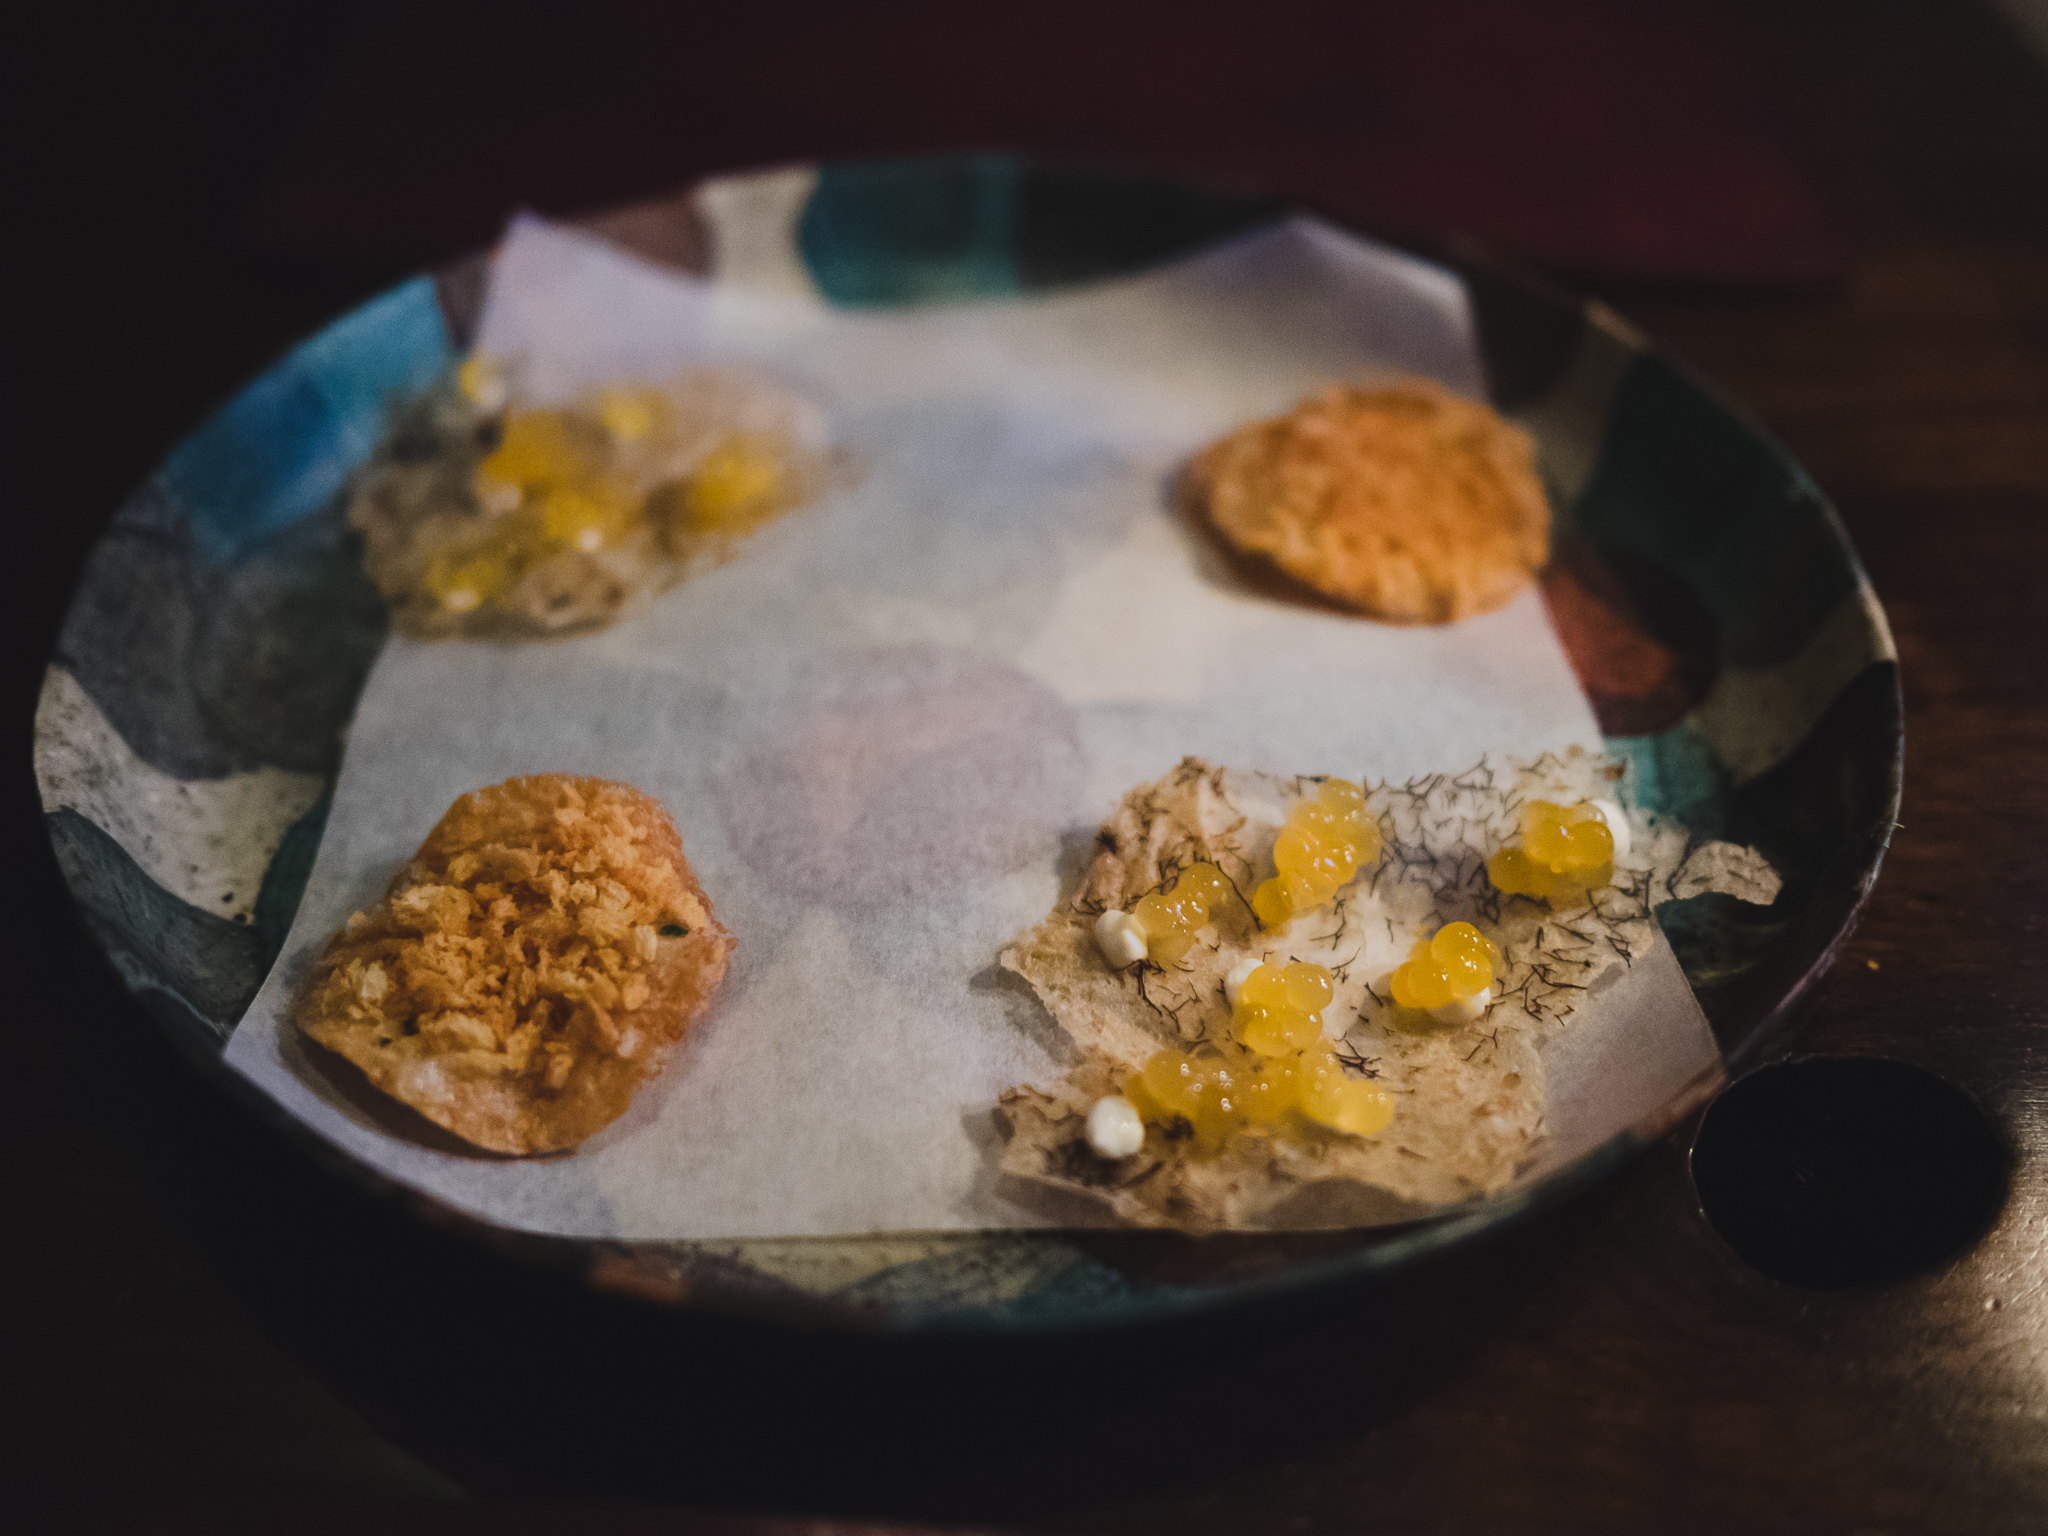 snacks 05. rutabaga and smoked cod roe; 04. oats, trout roe and sea truffle.